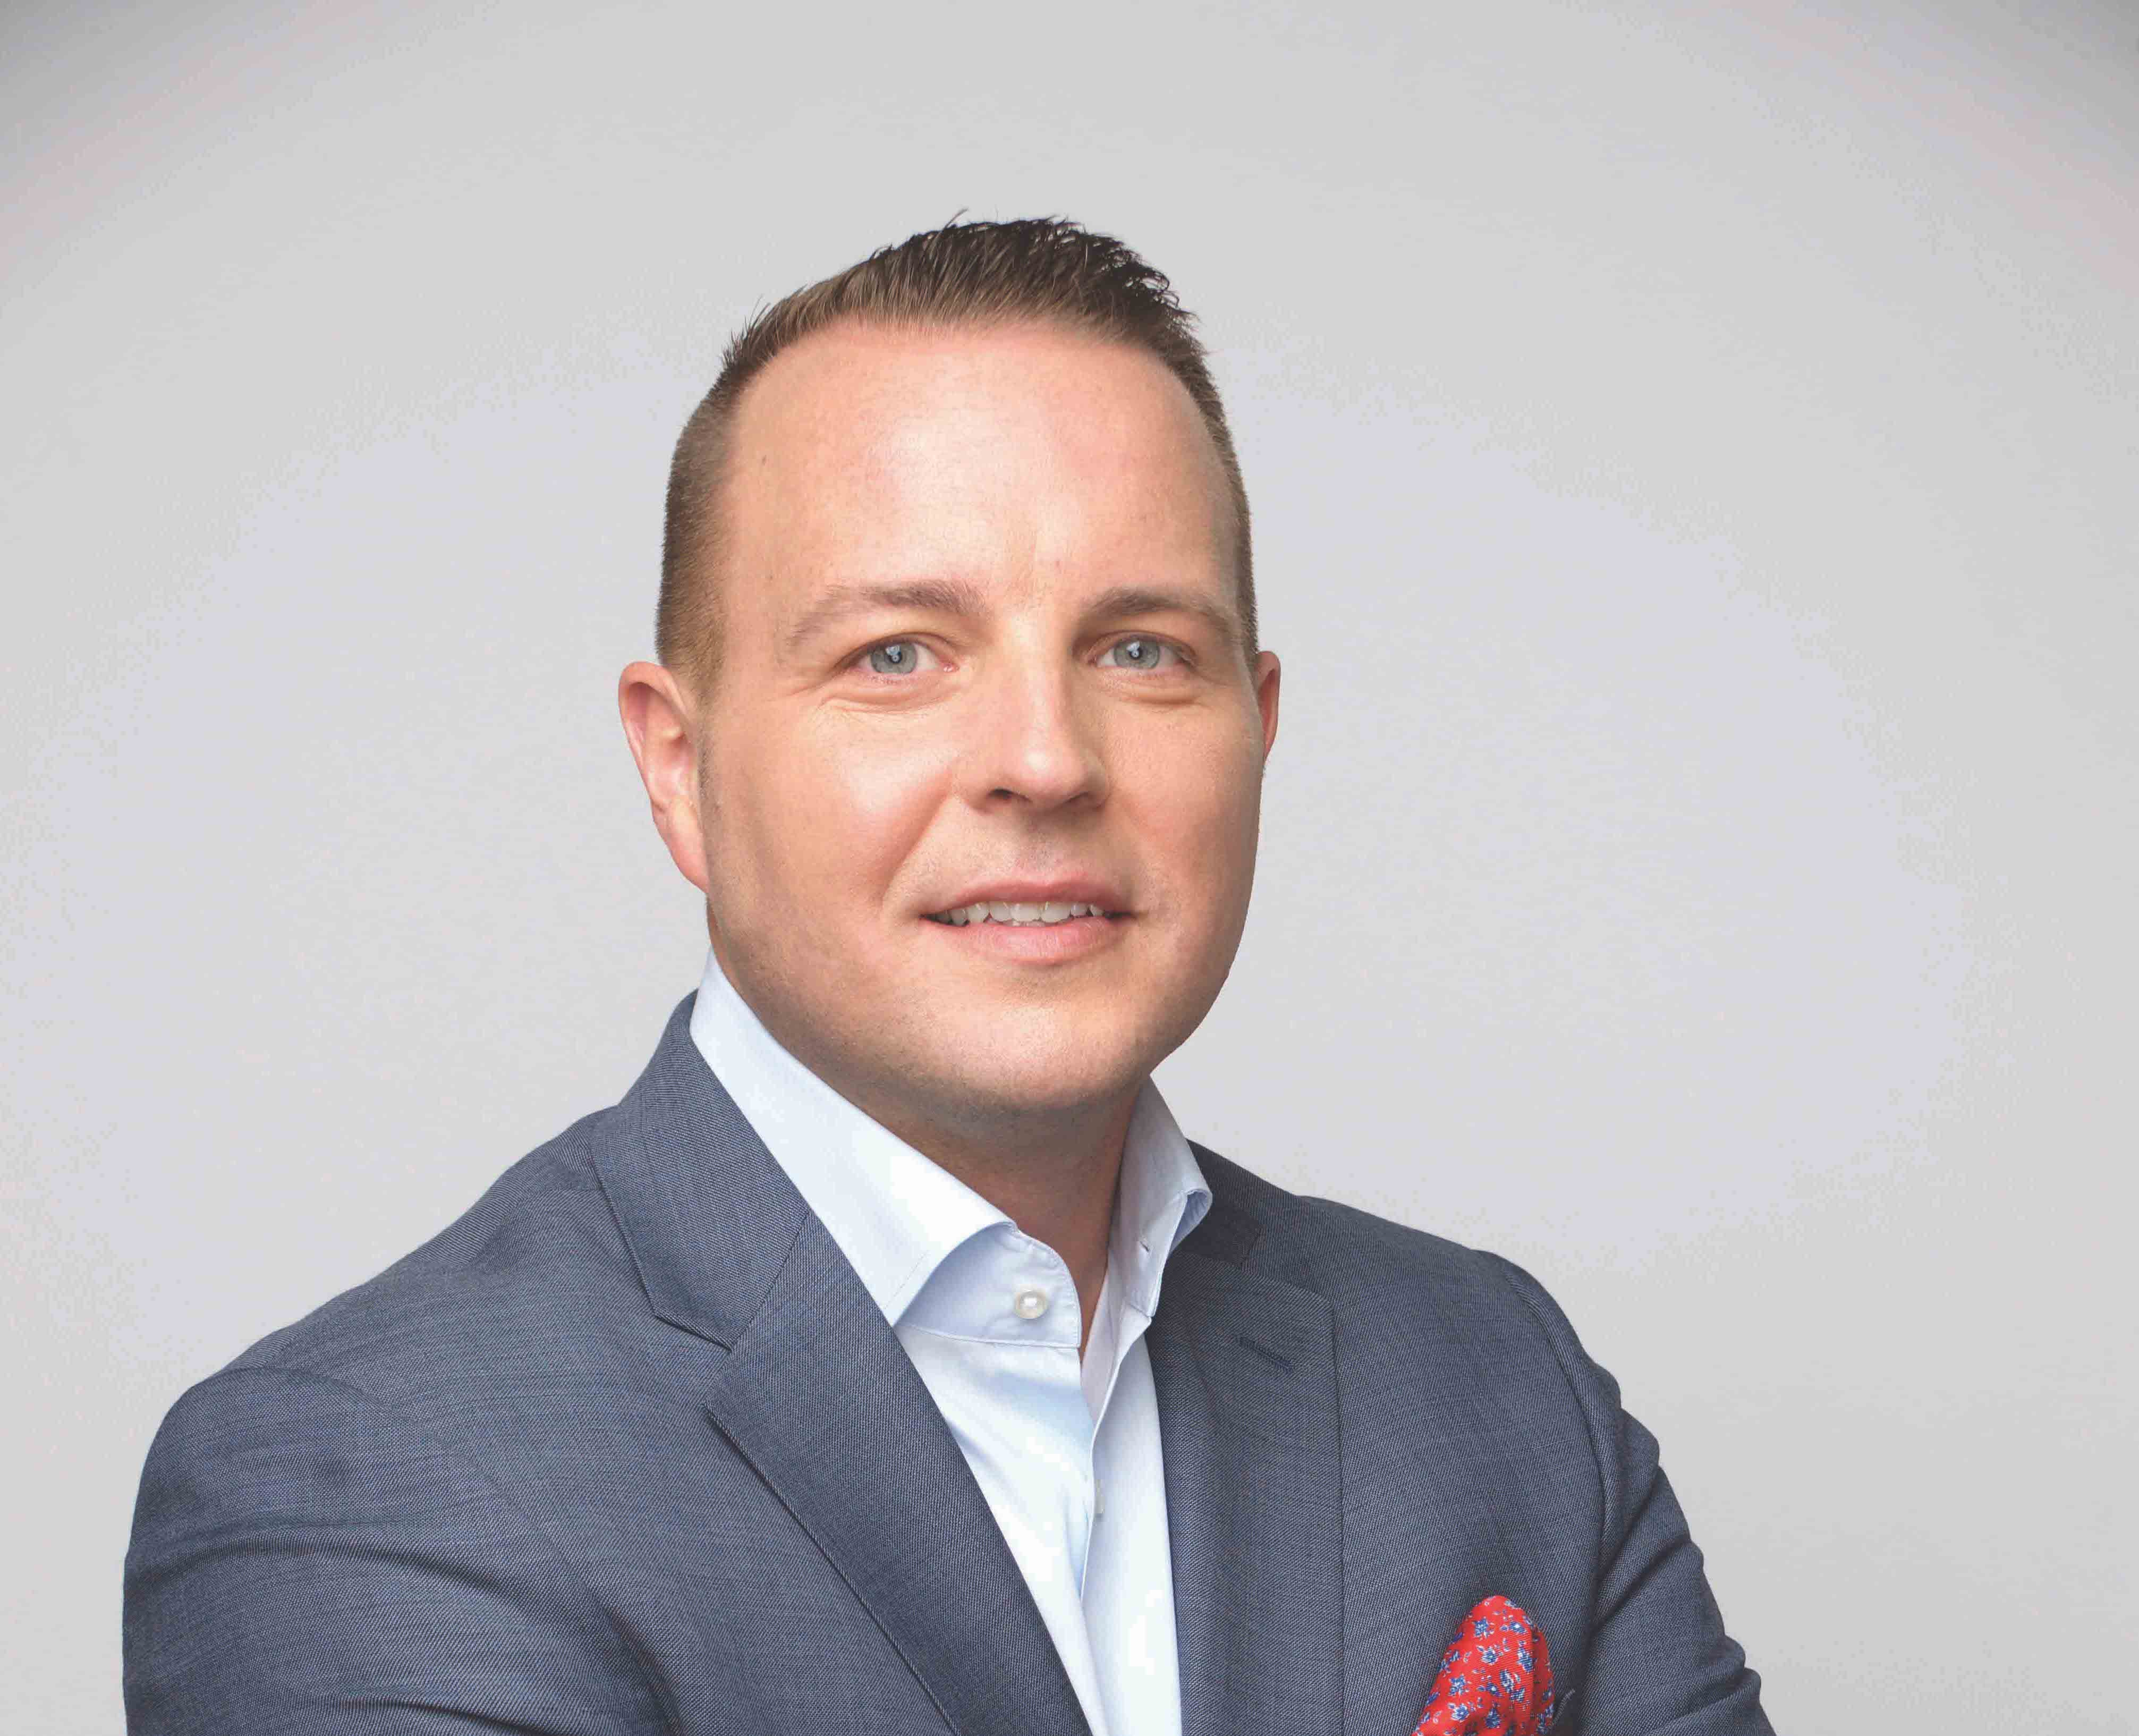 Affinity Worldwide names new CEO